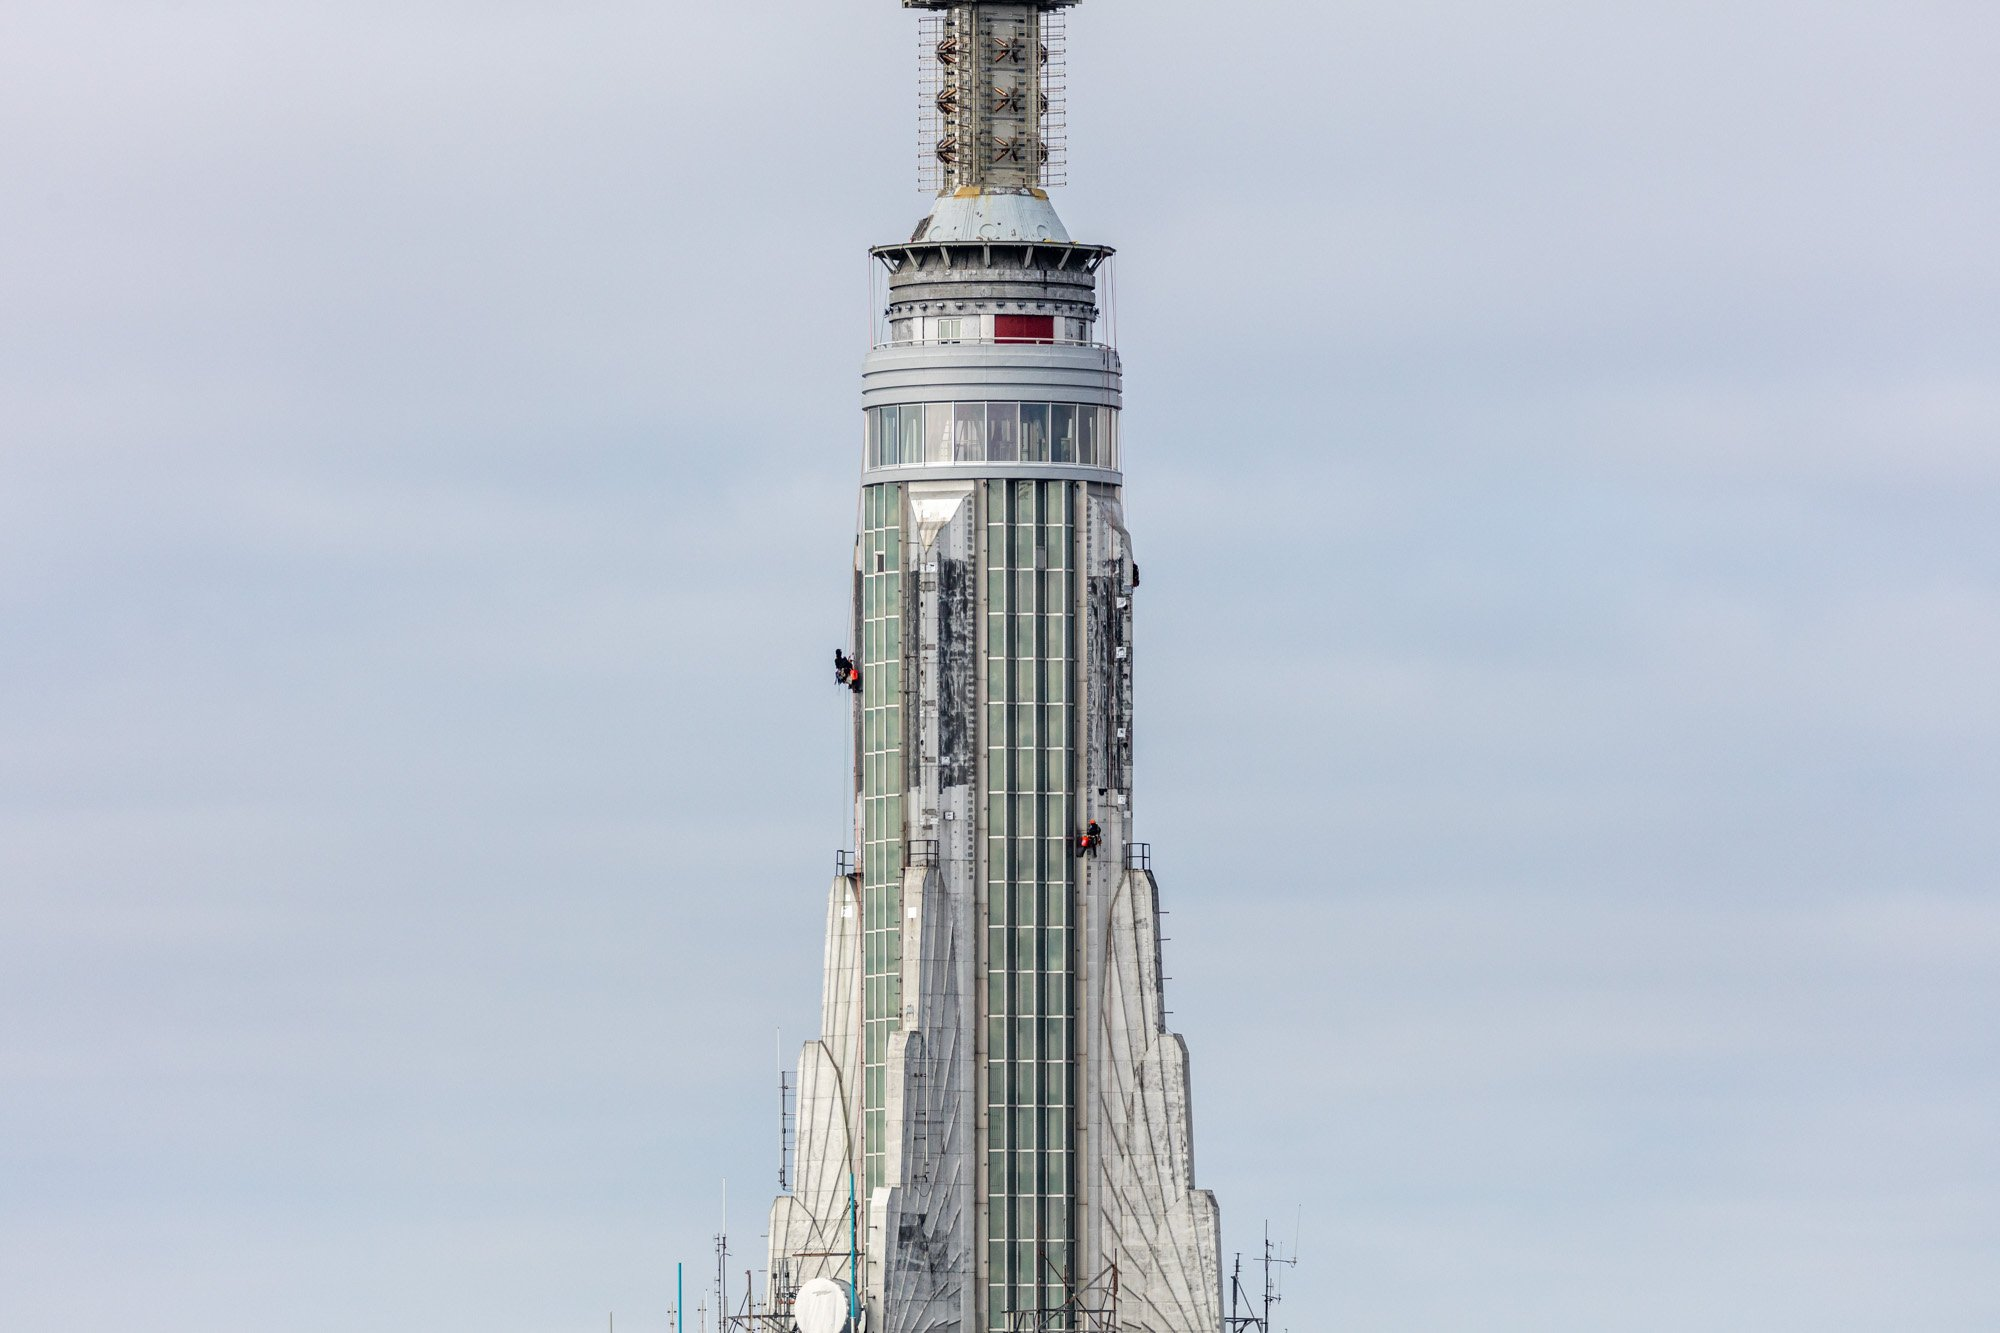 Audacieuse Empire State Building's Art Deco spire returns in all its glory TY-68